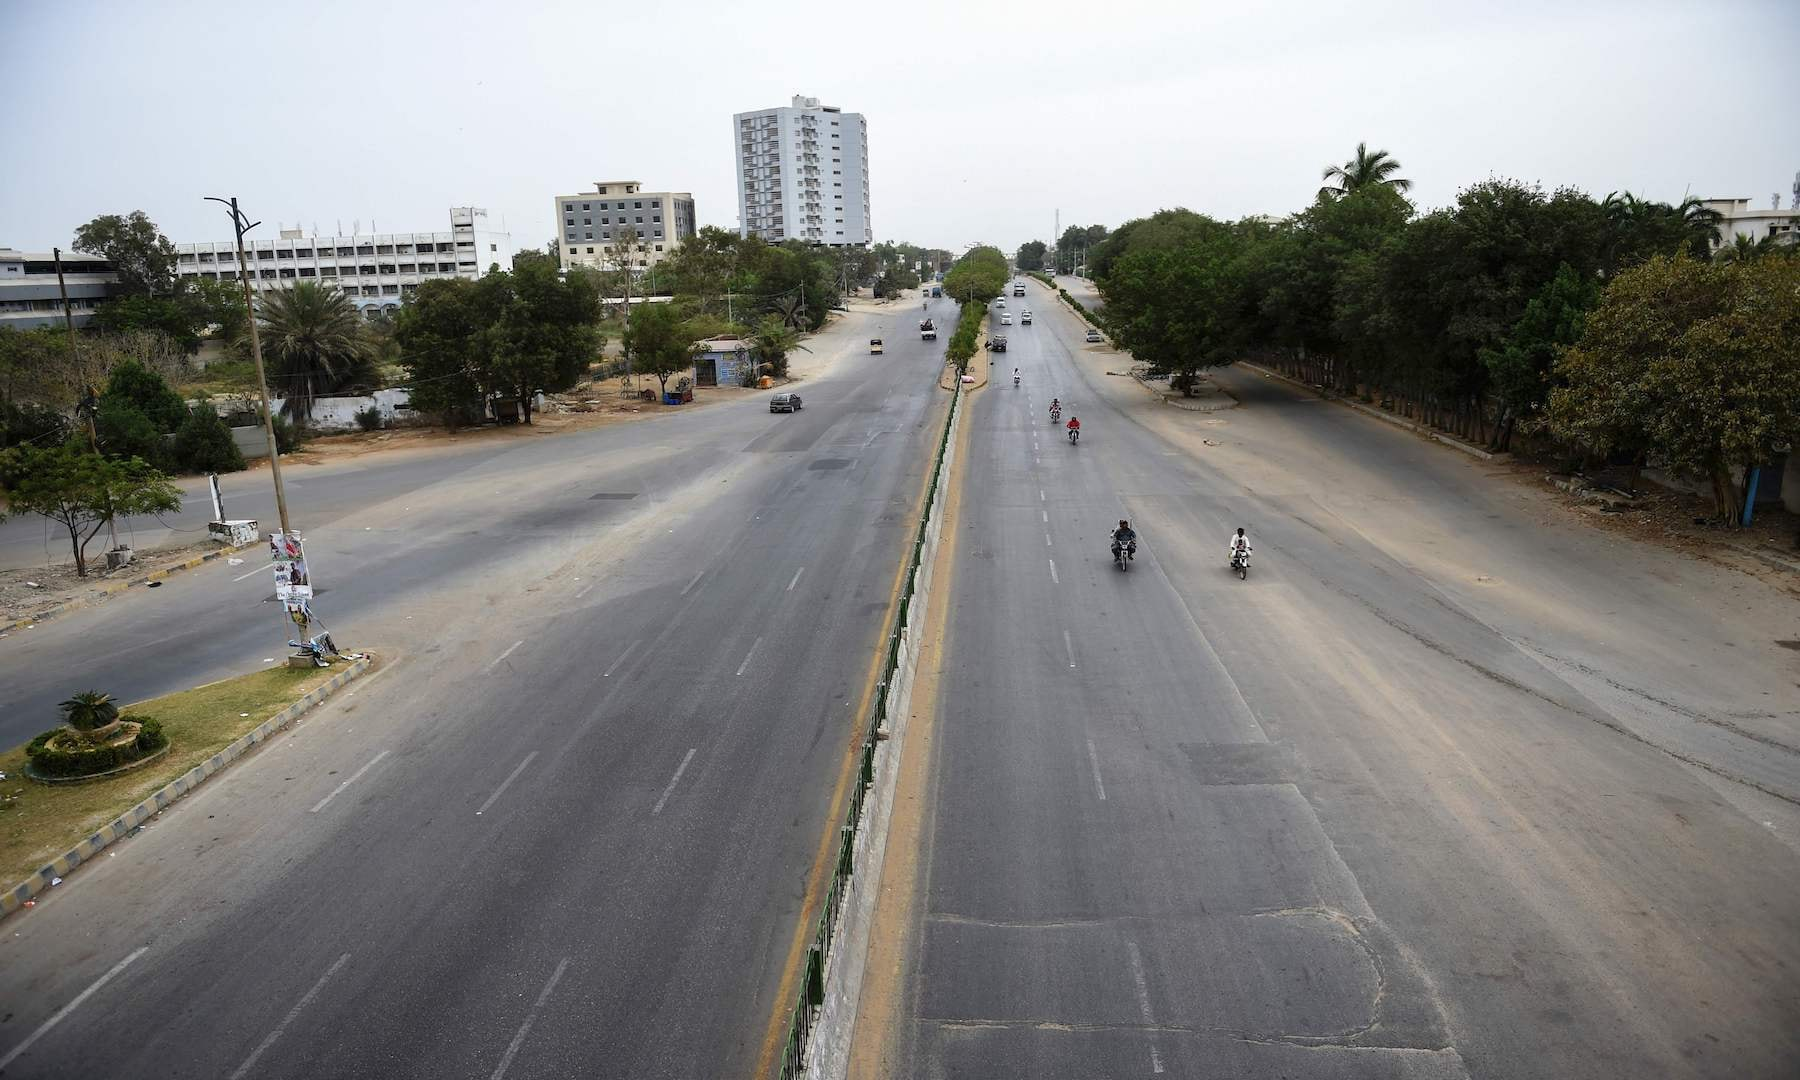 Commuters ride on a deserted road during a lockdown in Karachi on Monday. — AFP